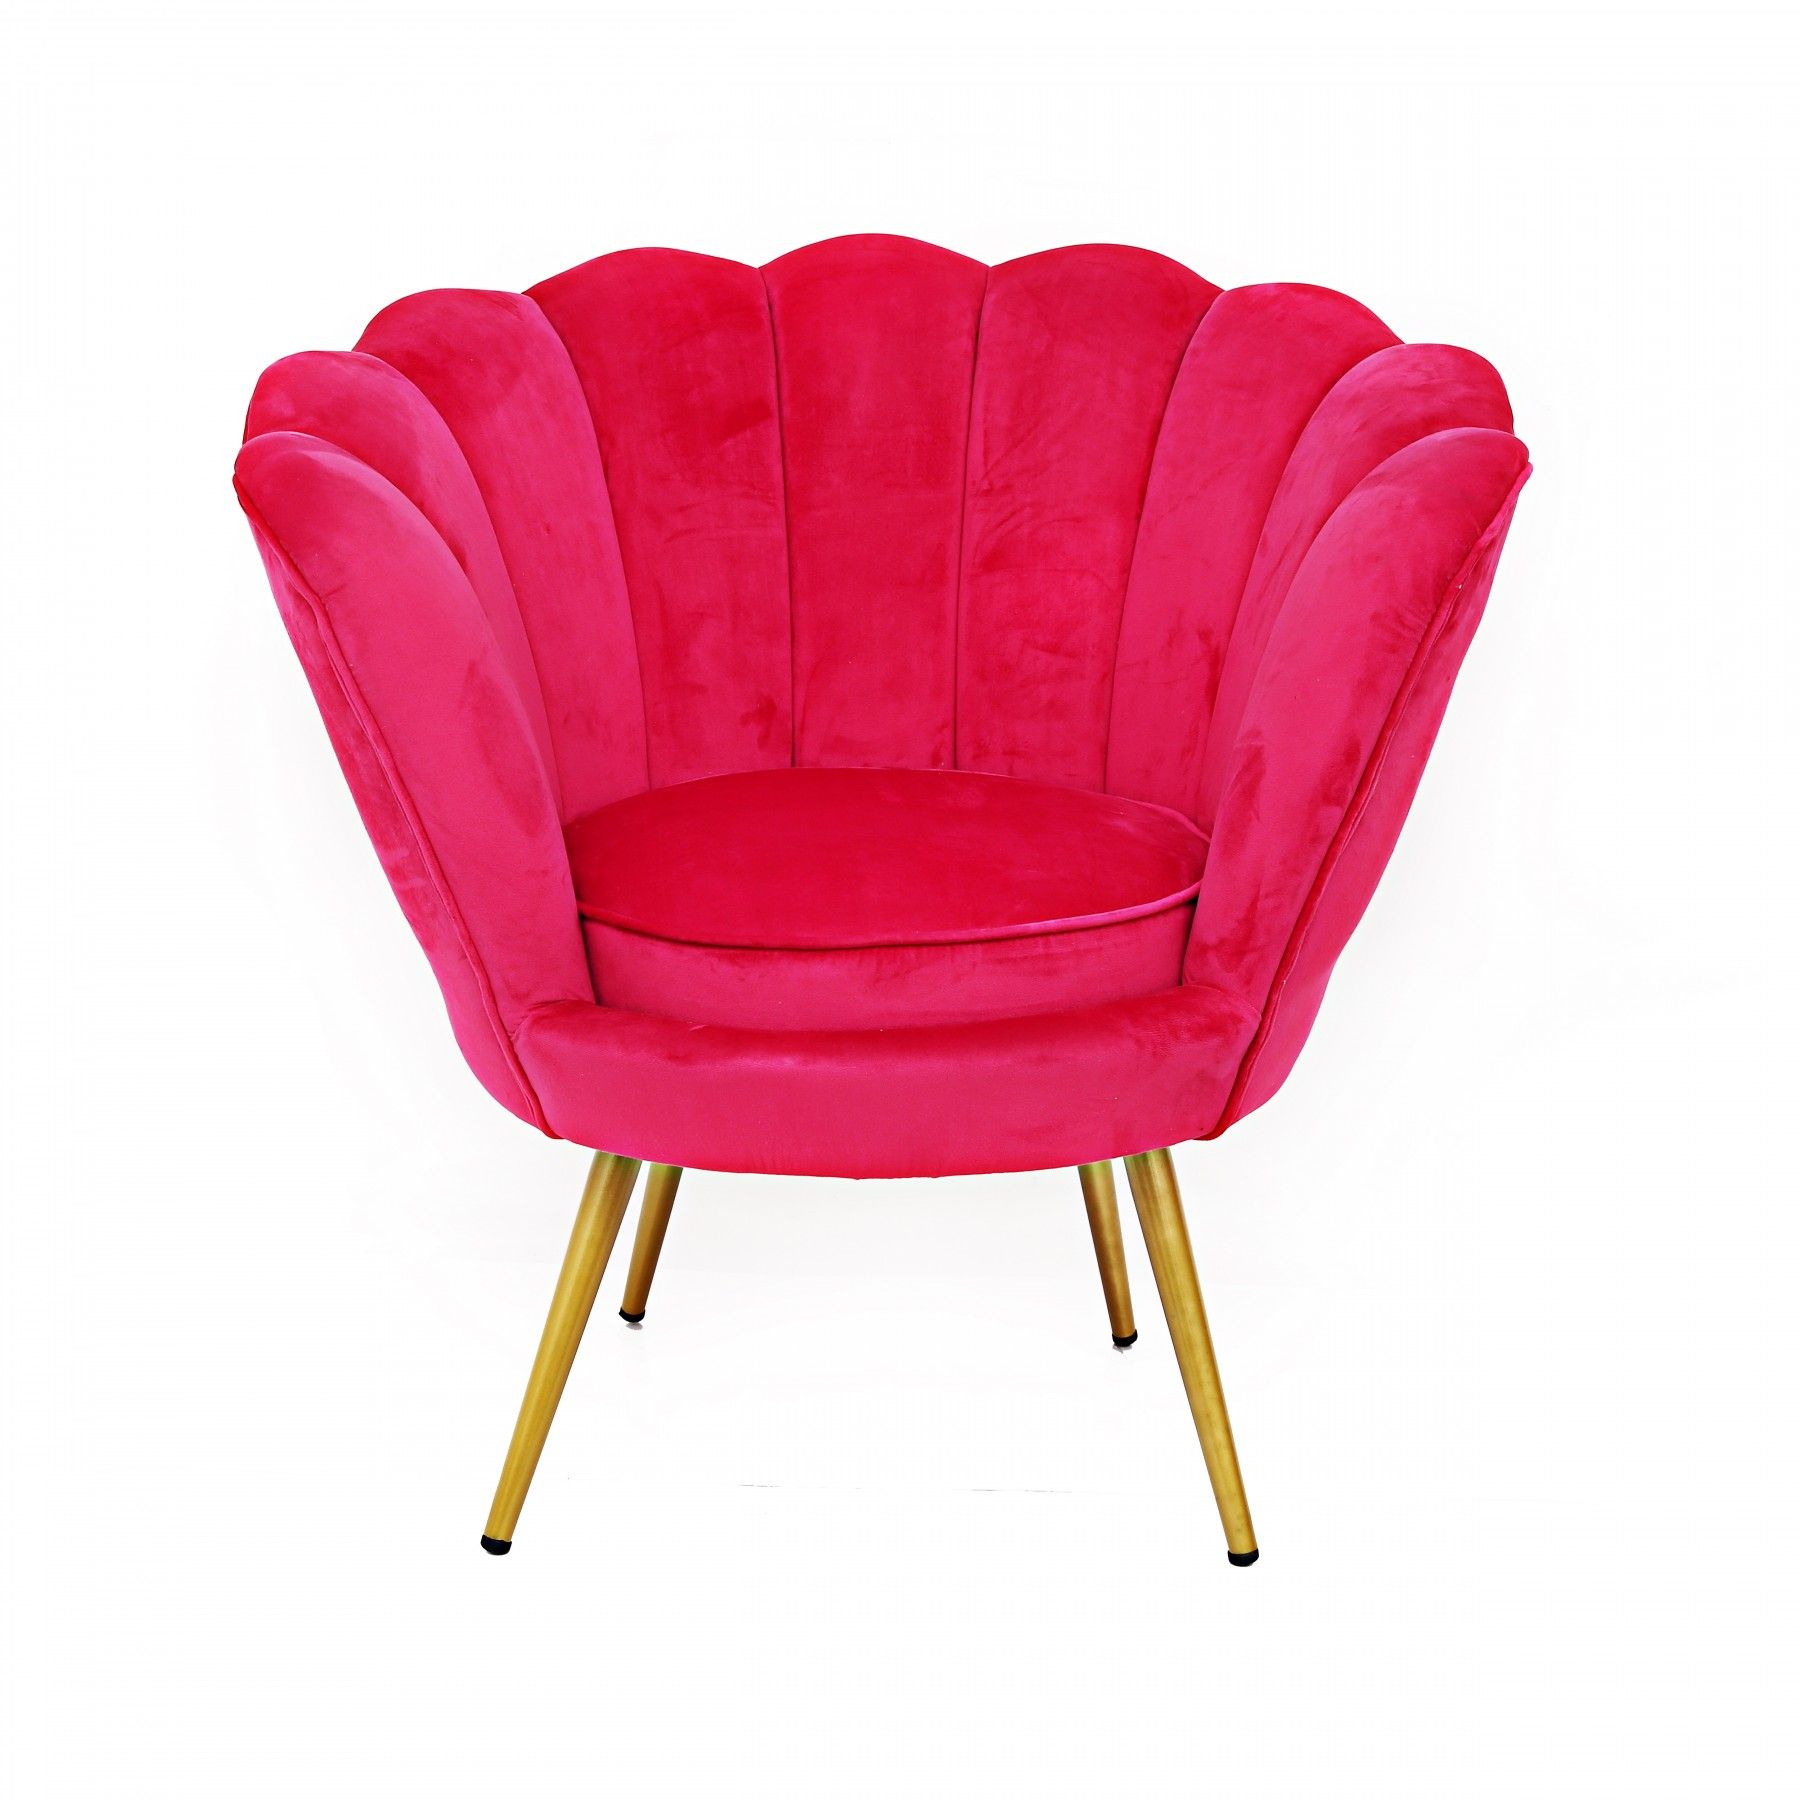 Hot Pink Velvet and Gold Scalloped Chair Chairs